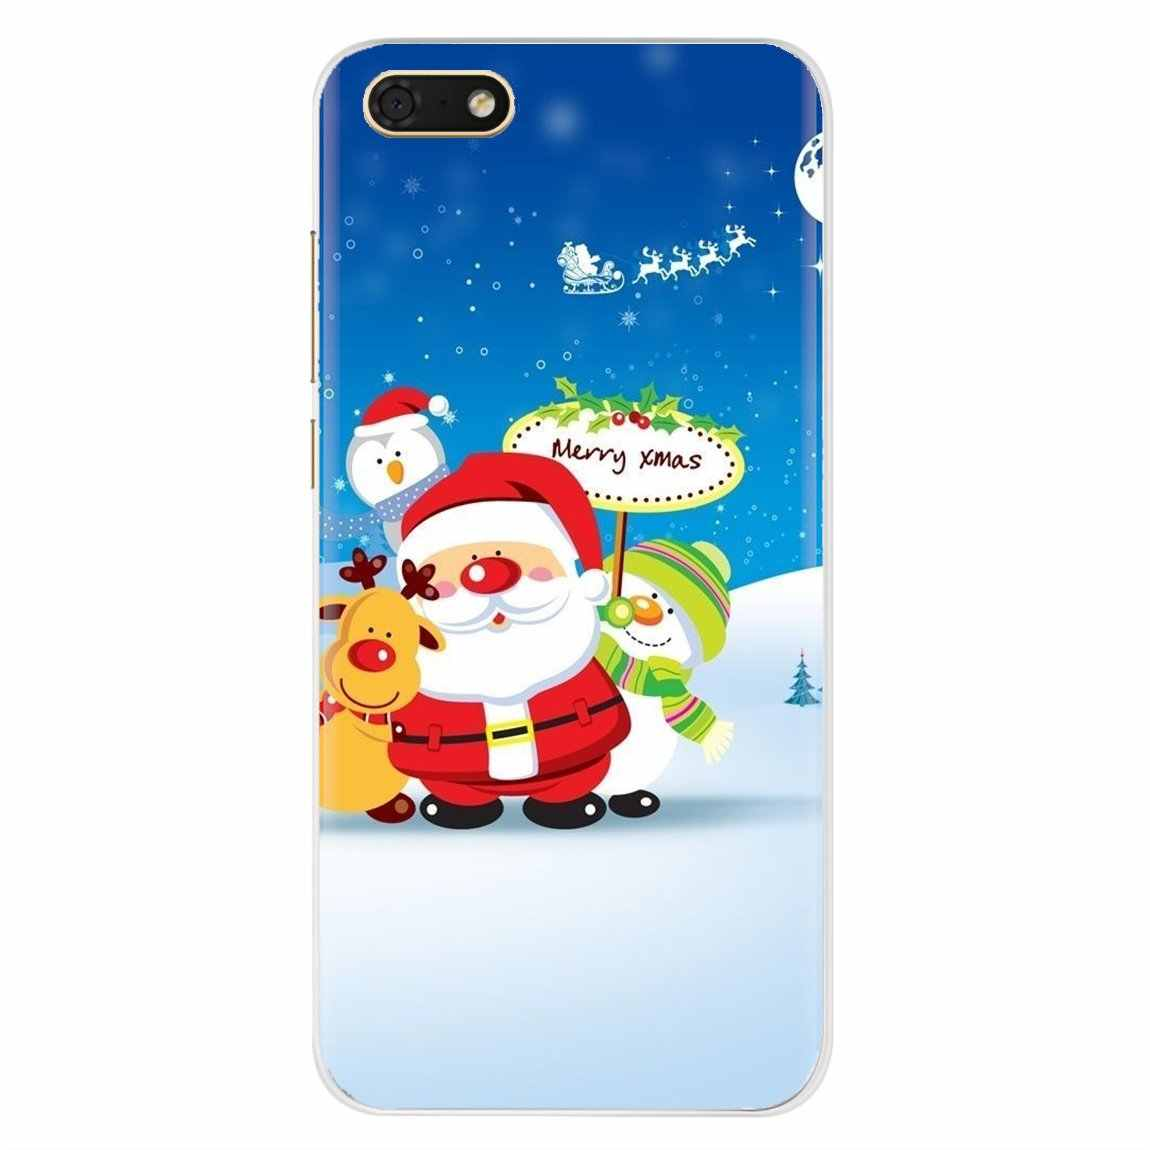 Personalized Silicone Phone Case For Motorola Moto G G2 G3 X4 E4 E5 G5 G5S G6 Z Z2 Z3 C Play Plus Christmas New Years